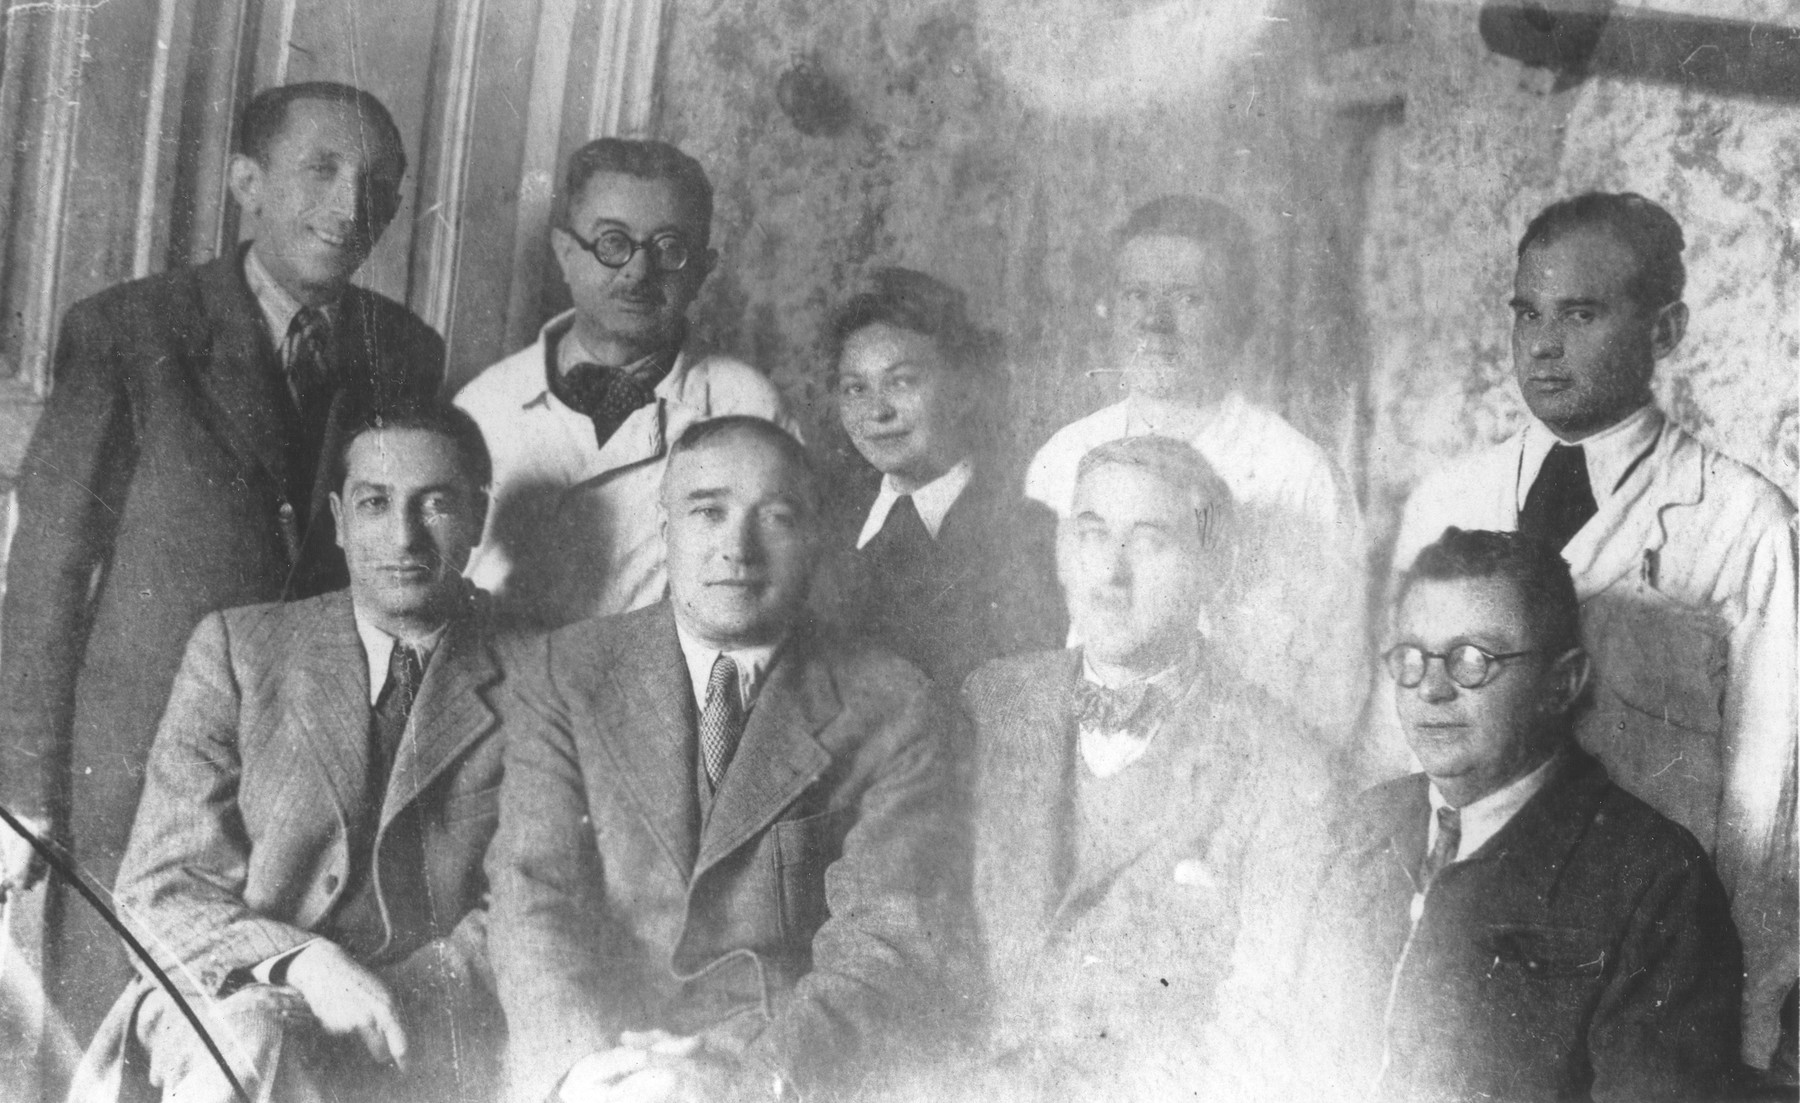 Group portrait of members of the medical staff of the Turnatoria, the machine shop established by Siegfried Jagendorf in the Mogilev-Podolskiy foundry.  Pictured from right to left in the front row are: Dr. B. Budick, Siegfried Jagendorf, Dr. F. Stern, Pinchas Katz.  In the second row are: Max Heissmann, [other identifications unclear].